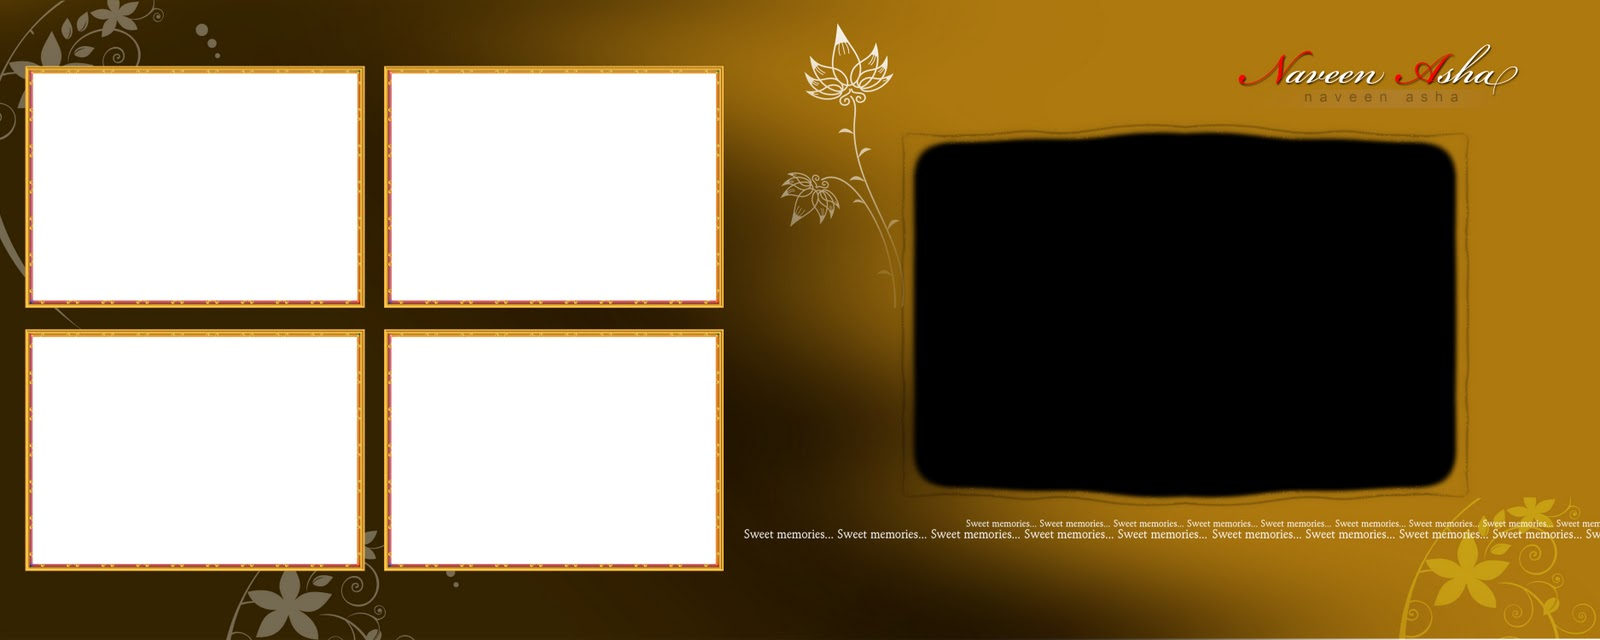 Indian Wedding Album Templates Free Download Tags Indian Wedding Album